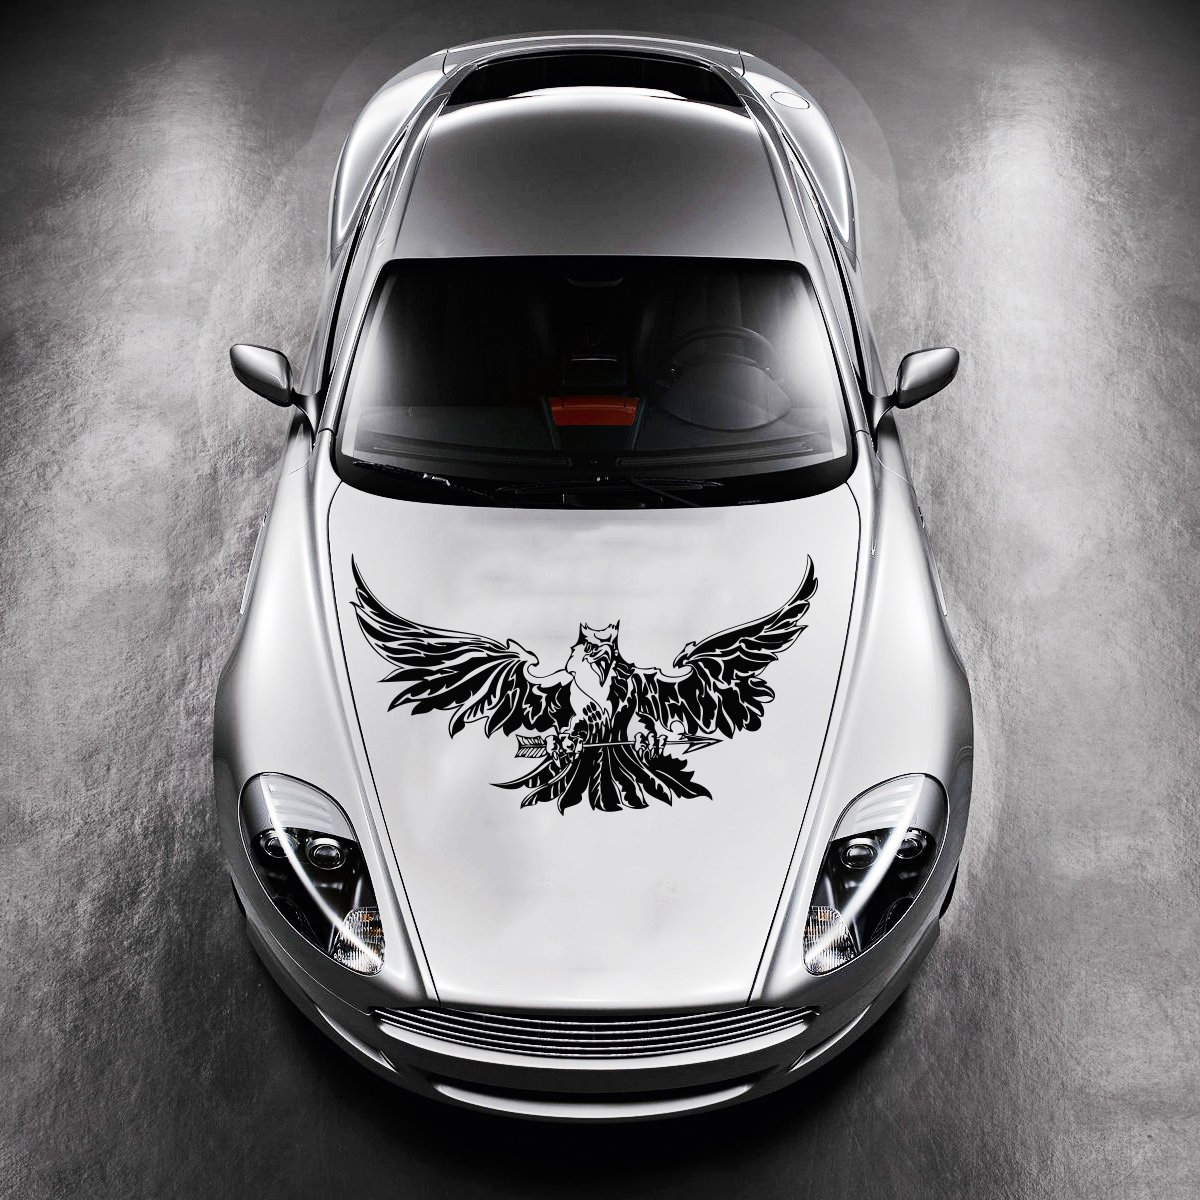 Amazoncom Vinyl Decals For Car Hood Animal Flaming Tribal Eagle - Auto graphic stickersdiscount auto graphic decalsauto graphic decals on sale at